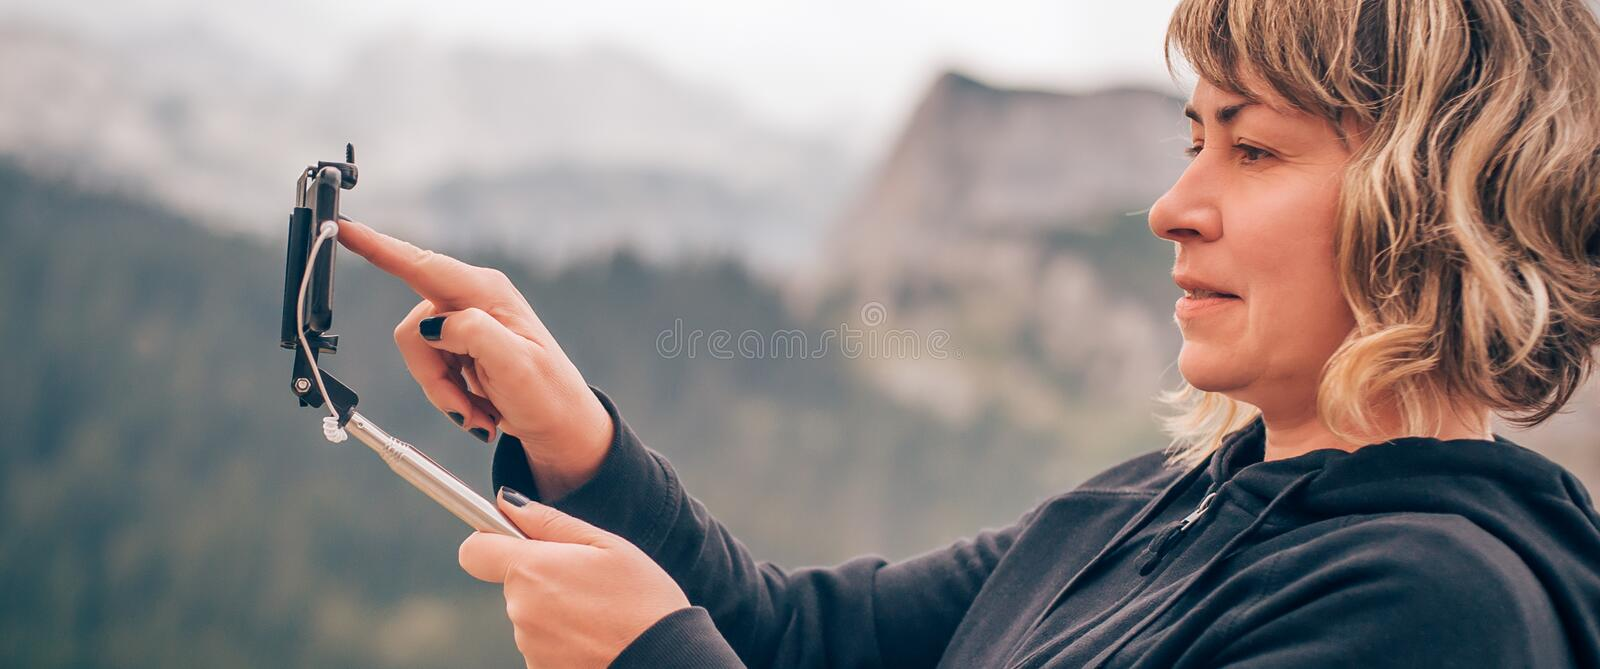 Woman taking panoramic picture of mountain landscape. Selfie photo stick stock photo